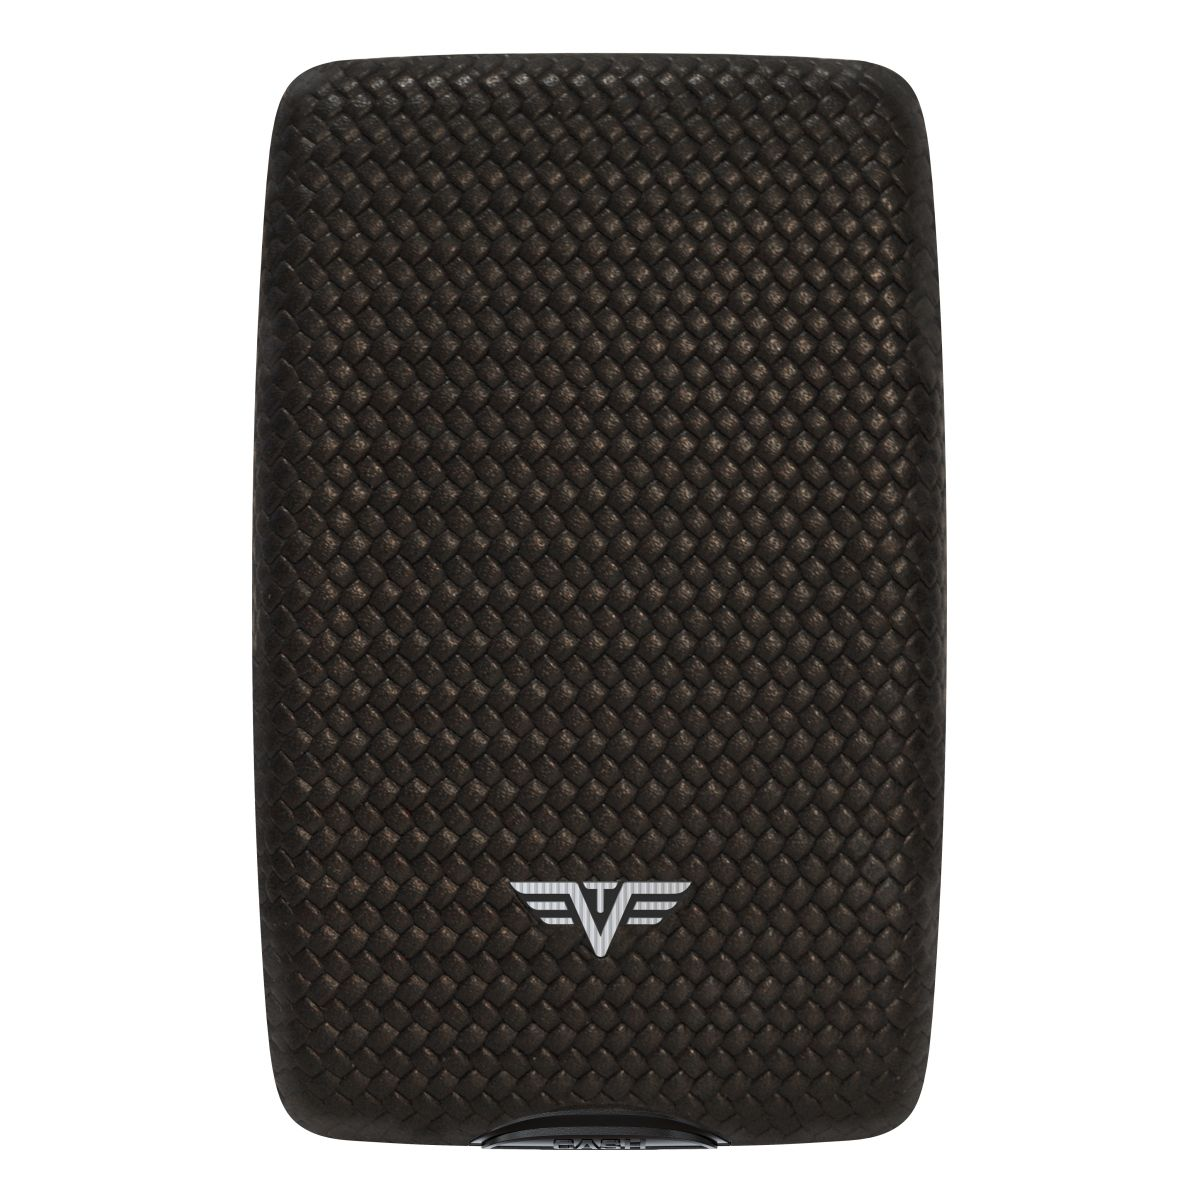 TRU VIRTU Aluminum Wallet Oyster Cash & Cards - Leather Line - Diagonal Carbon Black